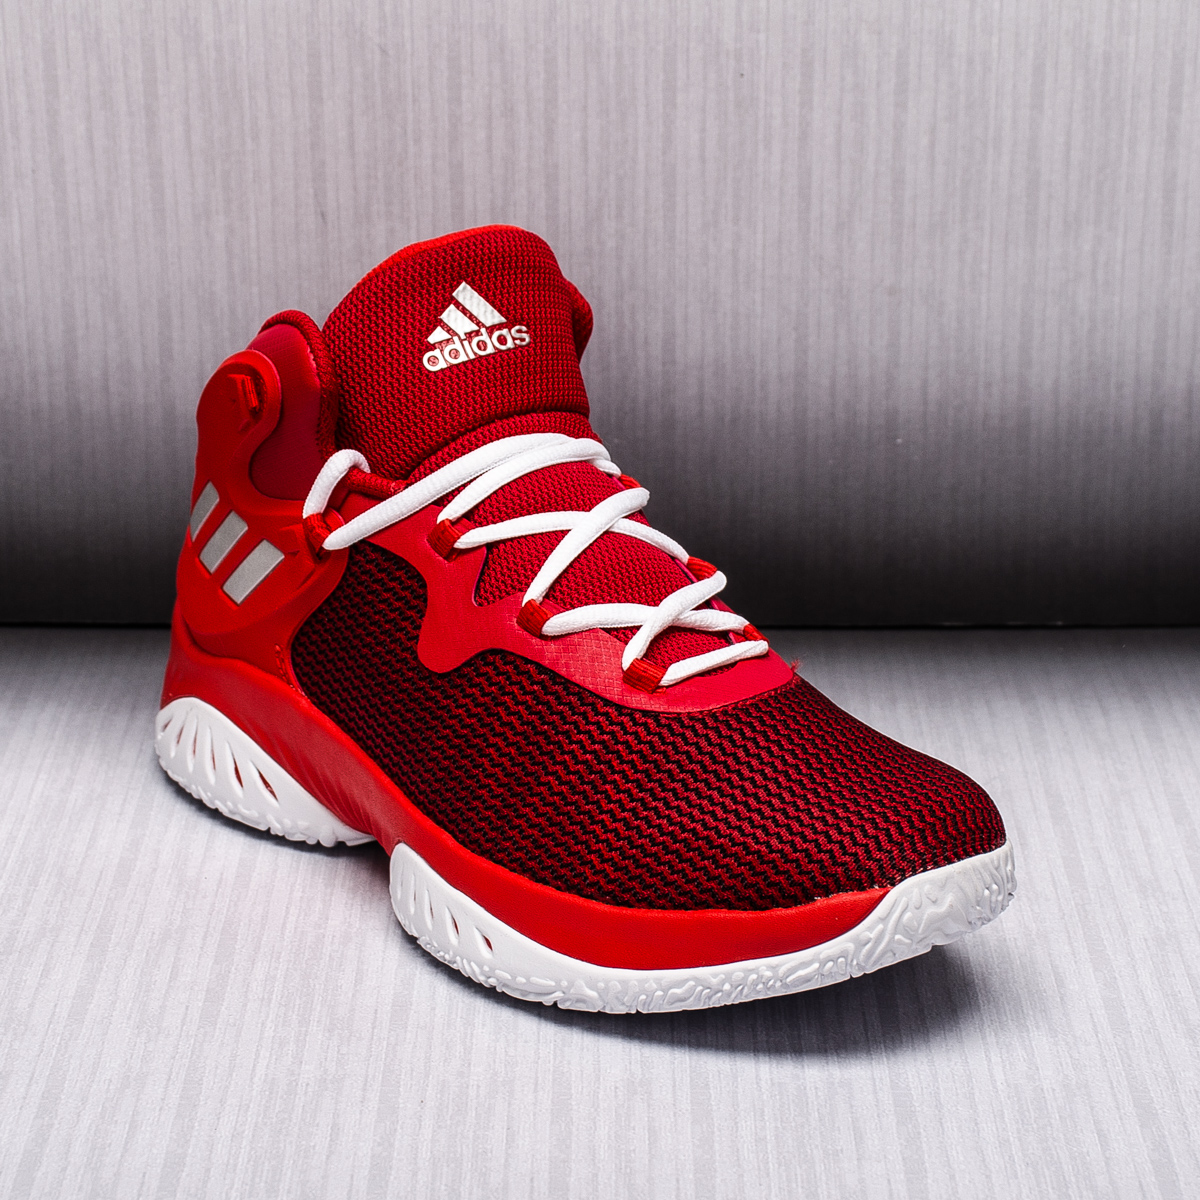 online store 30fa7 6c621 adidas Explosive Bounce Basketball Shoes - BASKETBALL SHOES Adidas  Basketball Shoes - Superfanas.lt